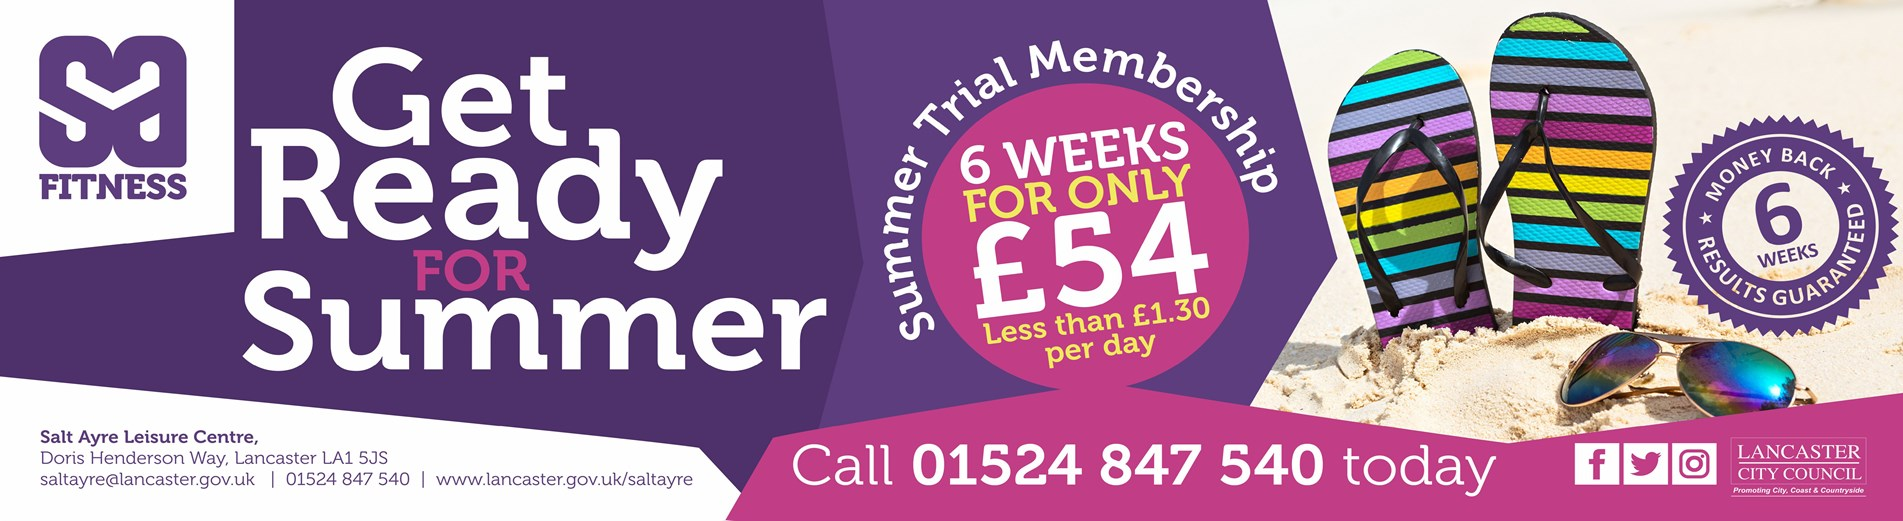 Summer SALC membership offer banner